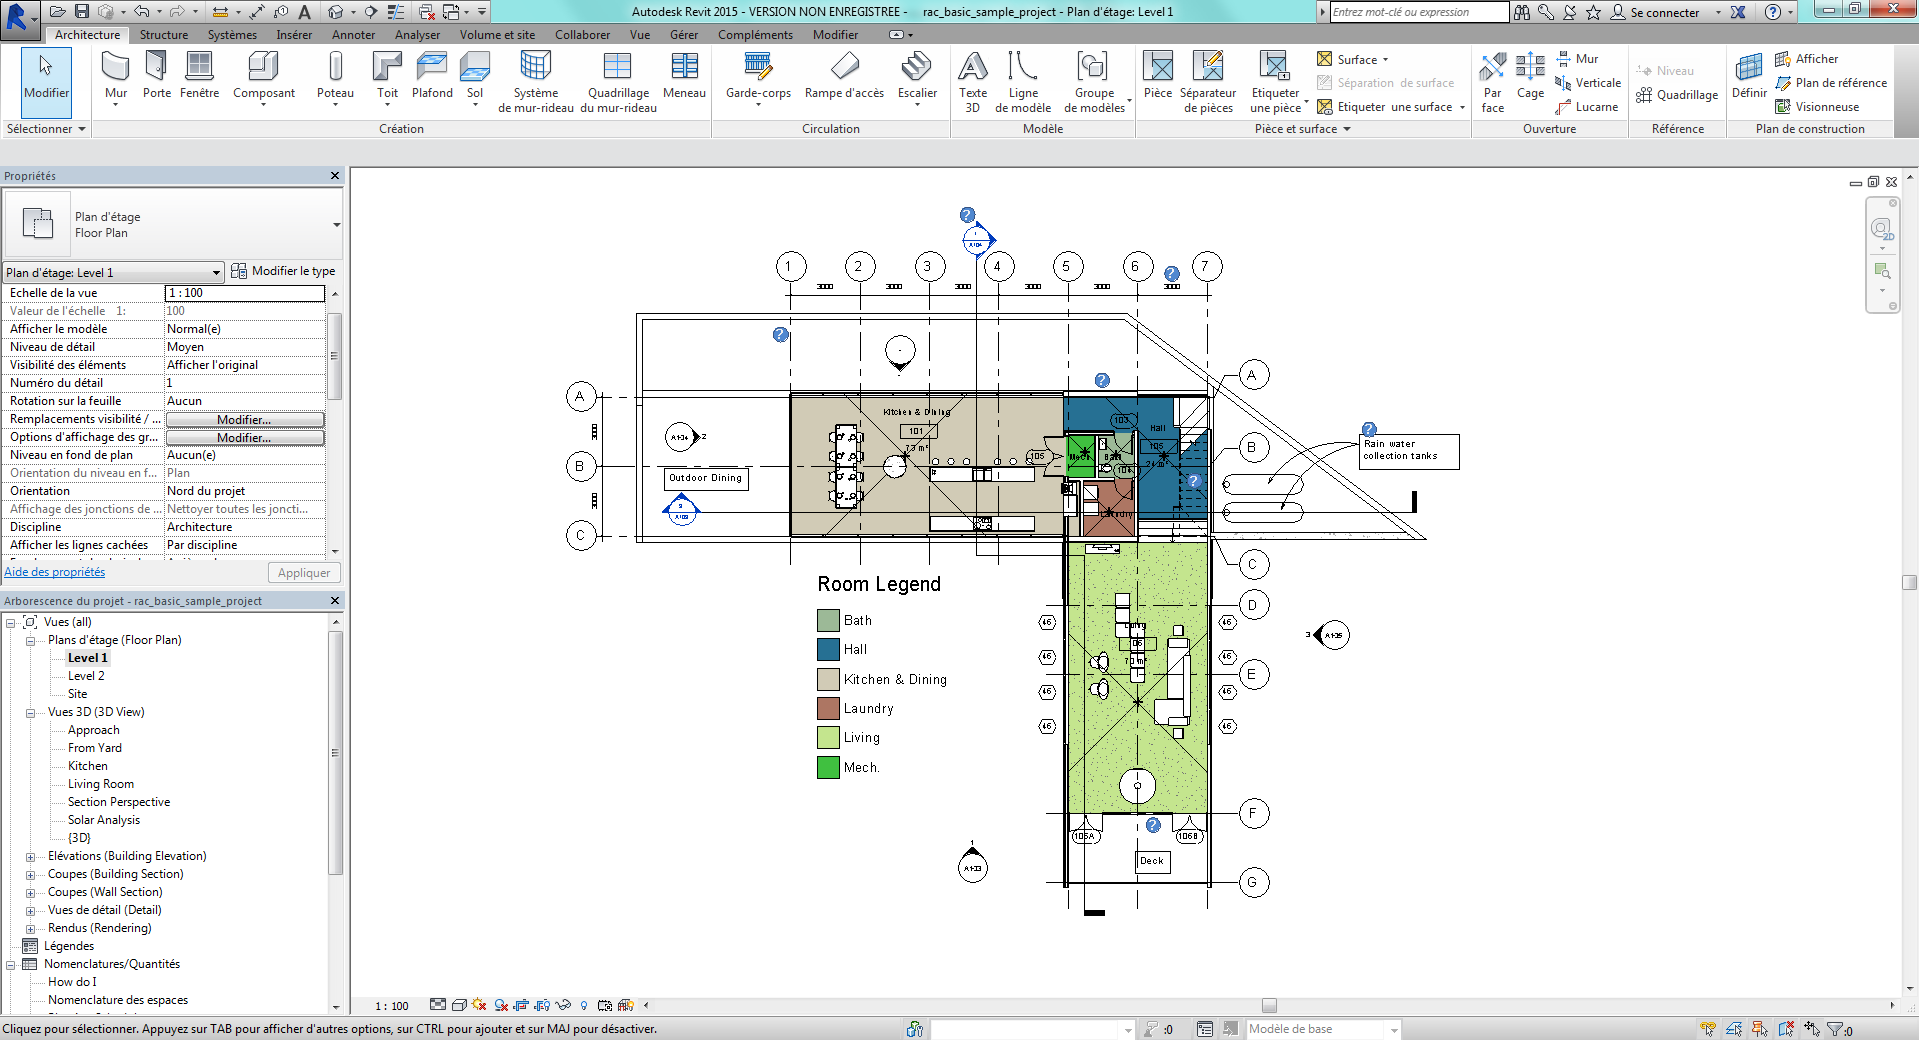 Autodesk_Revit_2015_03_level_01